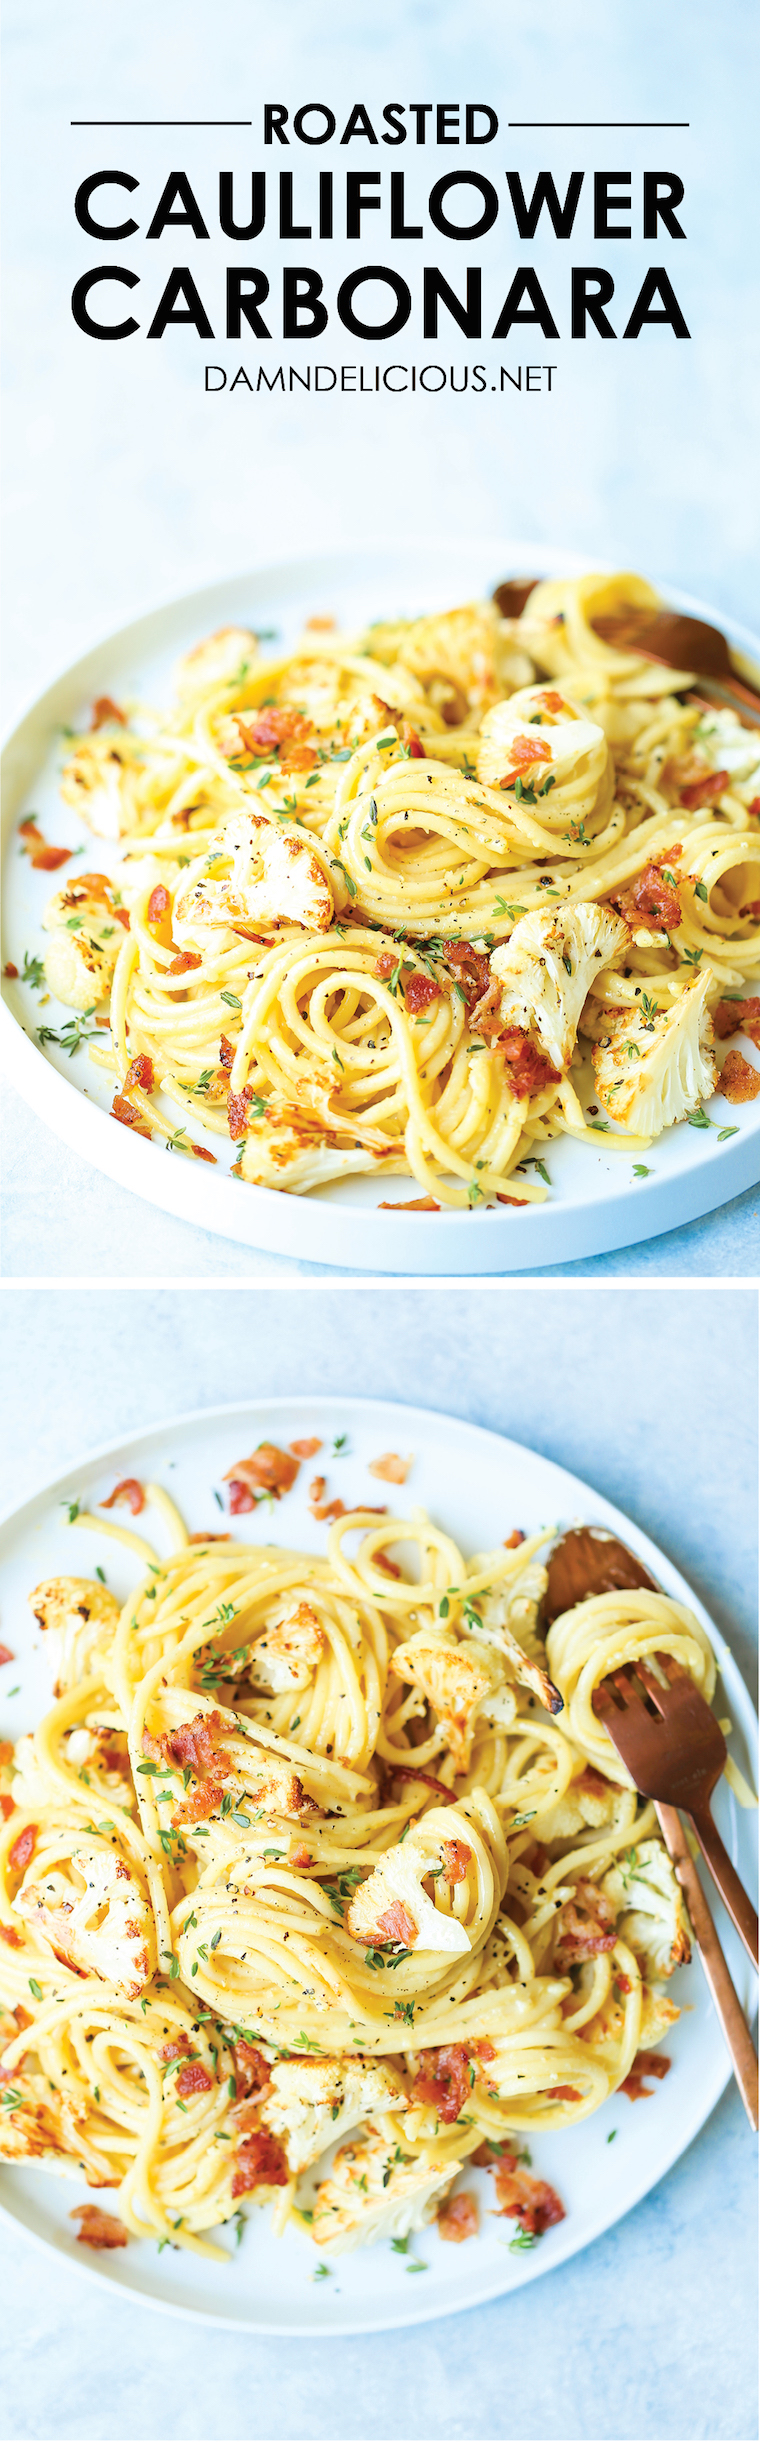 Roasted Cauliflower Carbonara - My favorite pasta dish ever! Loaded with crispy bacon, perfectly roasted garlic cauliflower + the best Parmesan sauce EVER.